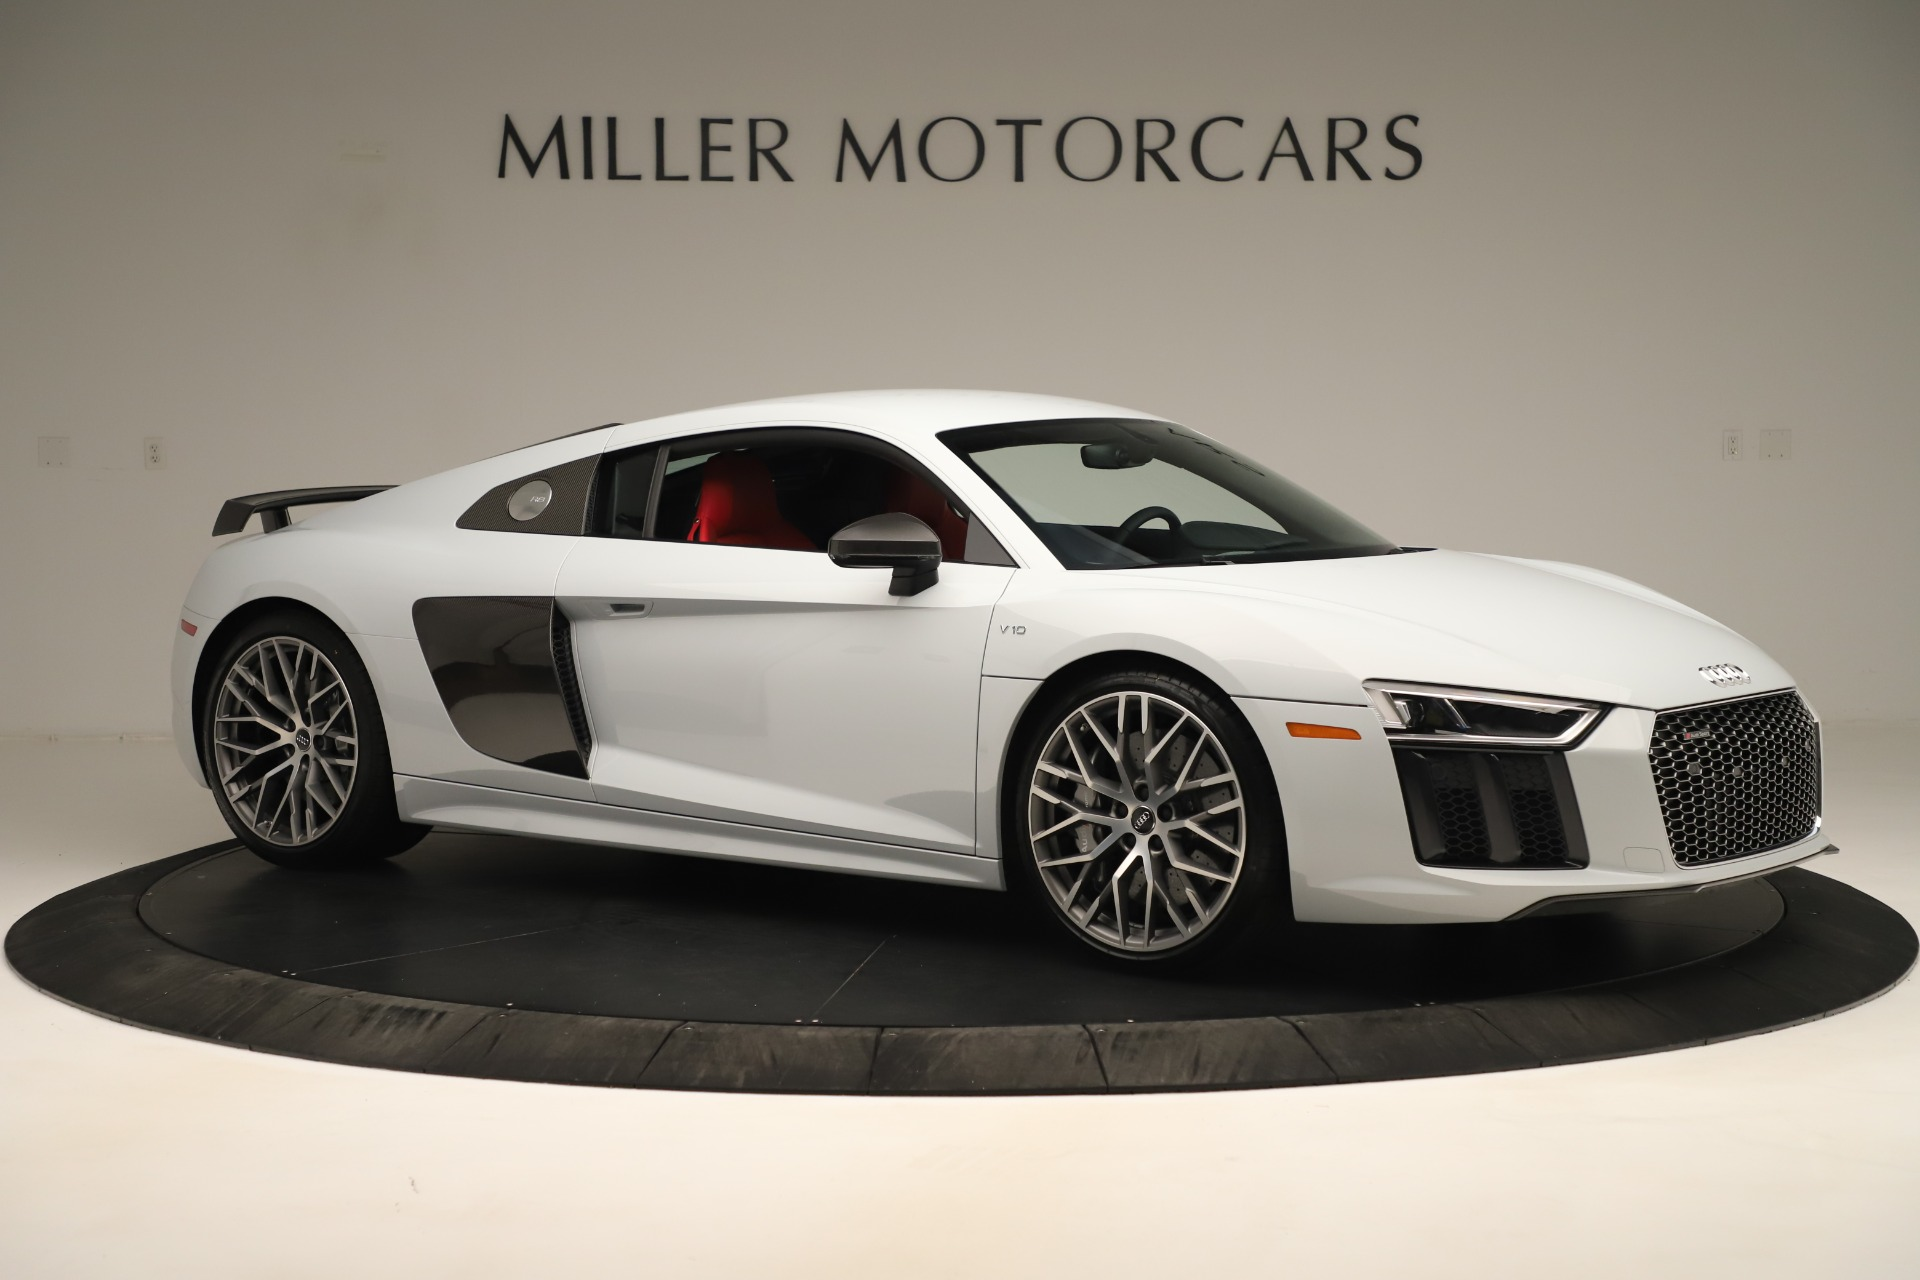 Used 2018 Audi R8 5.2 quattro V10 Plus For Sale In Westport, CT 3360_p10